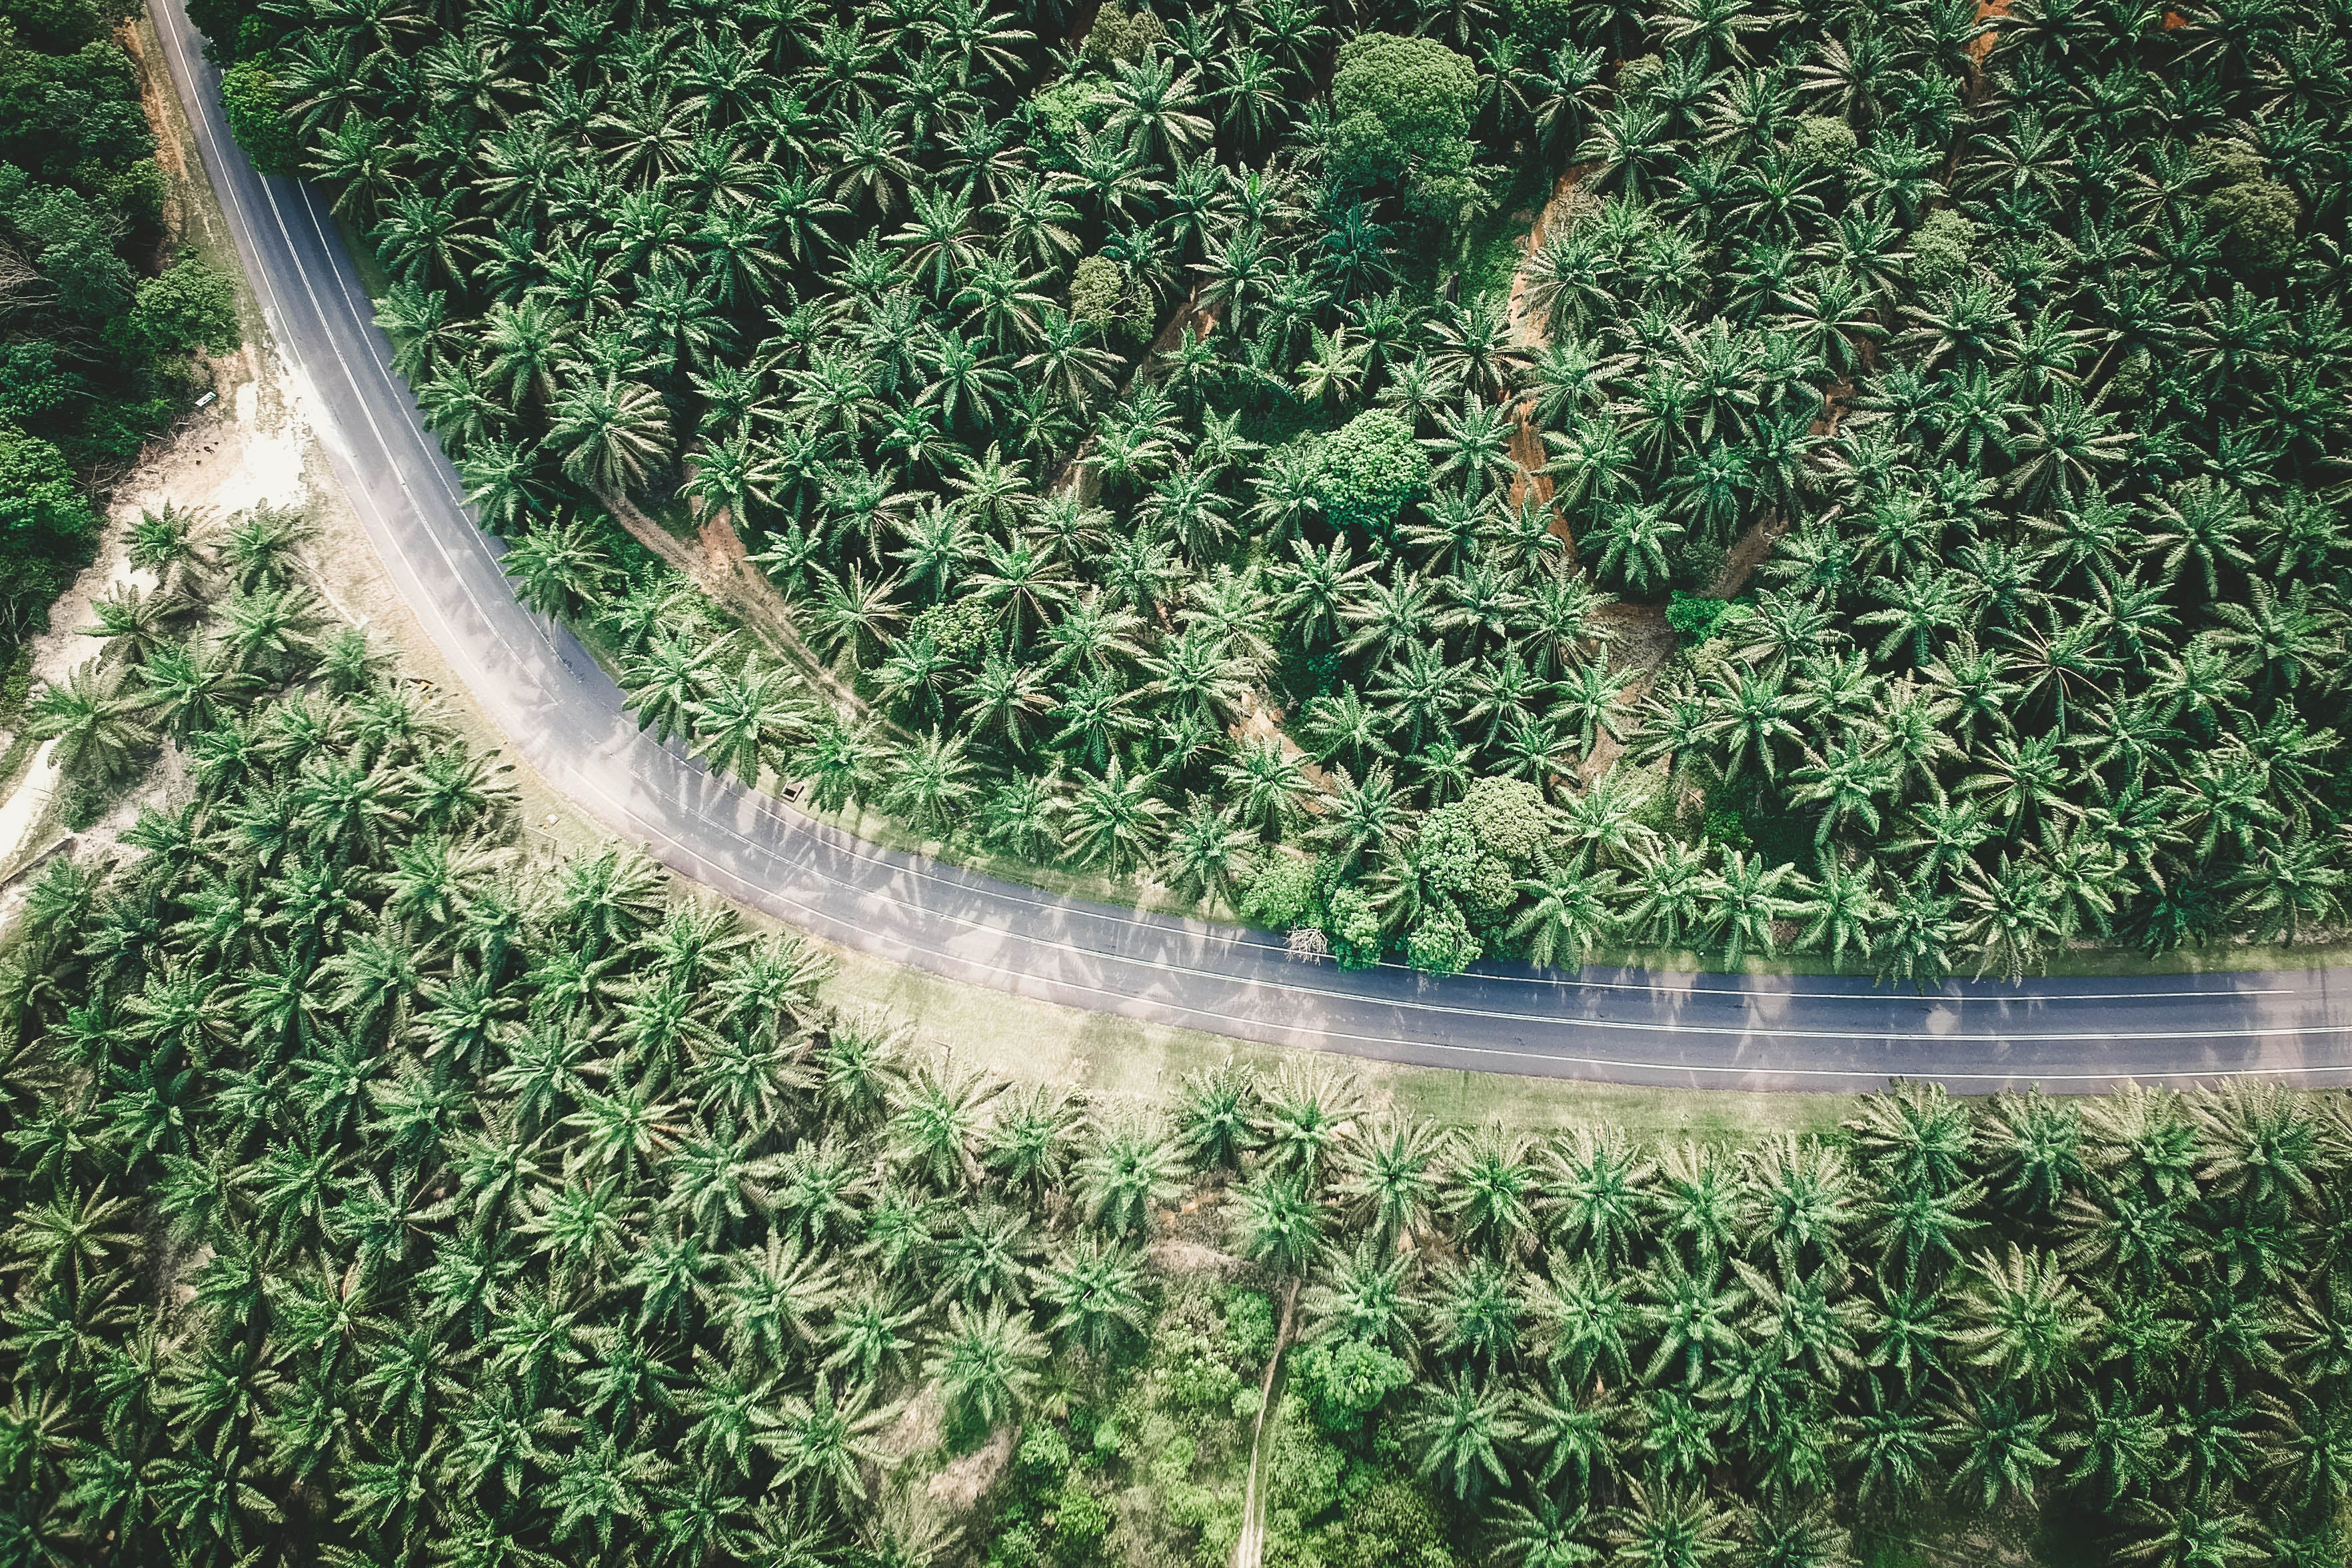 Aerial View of Highway Road Surrounded by Trees